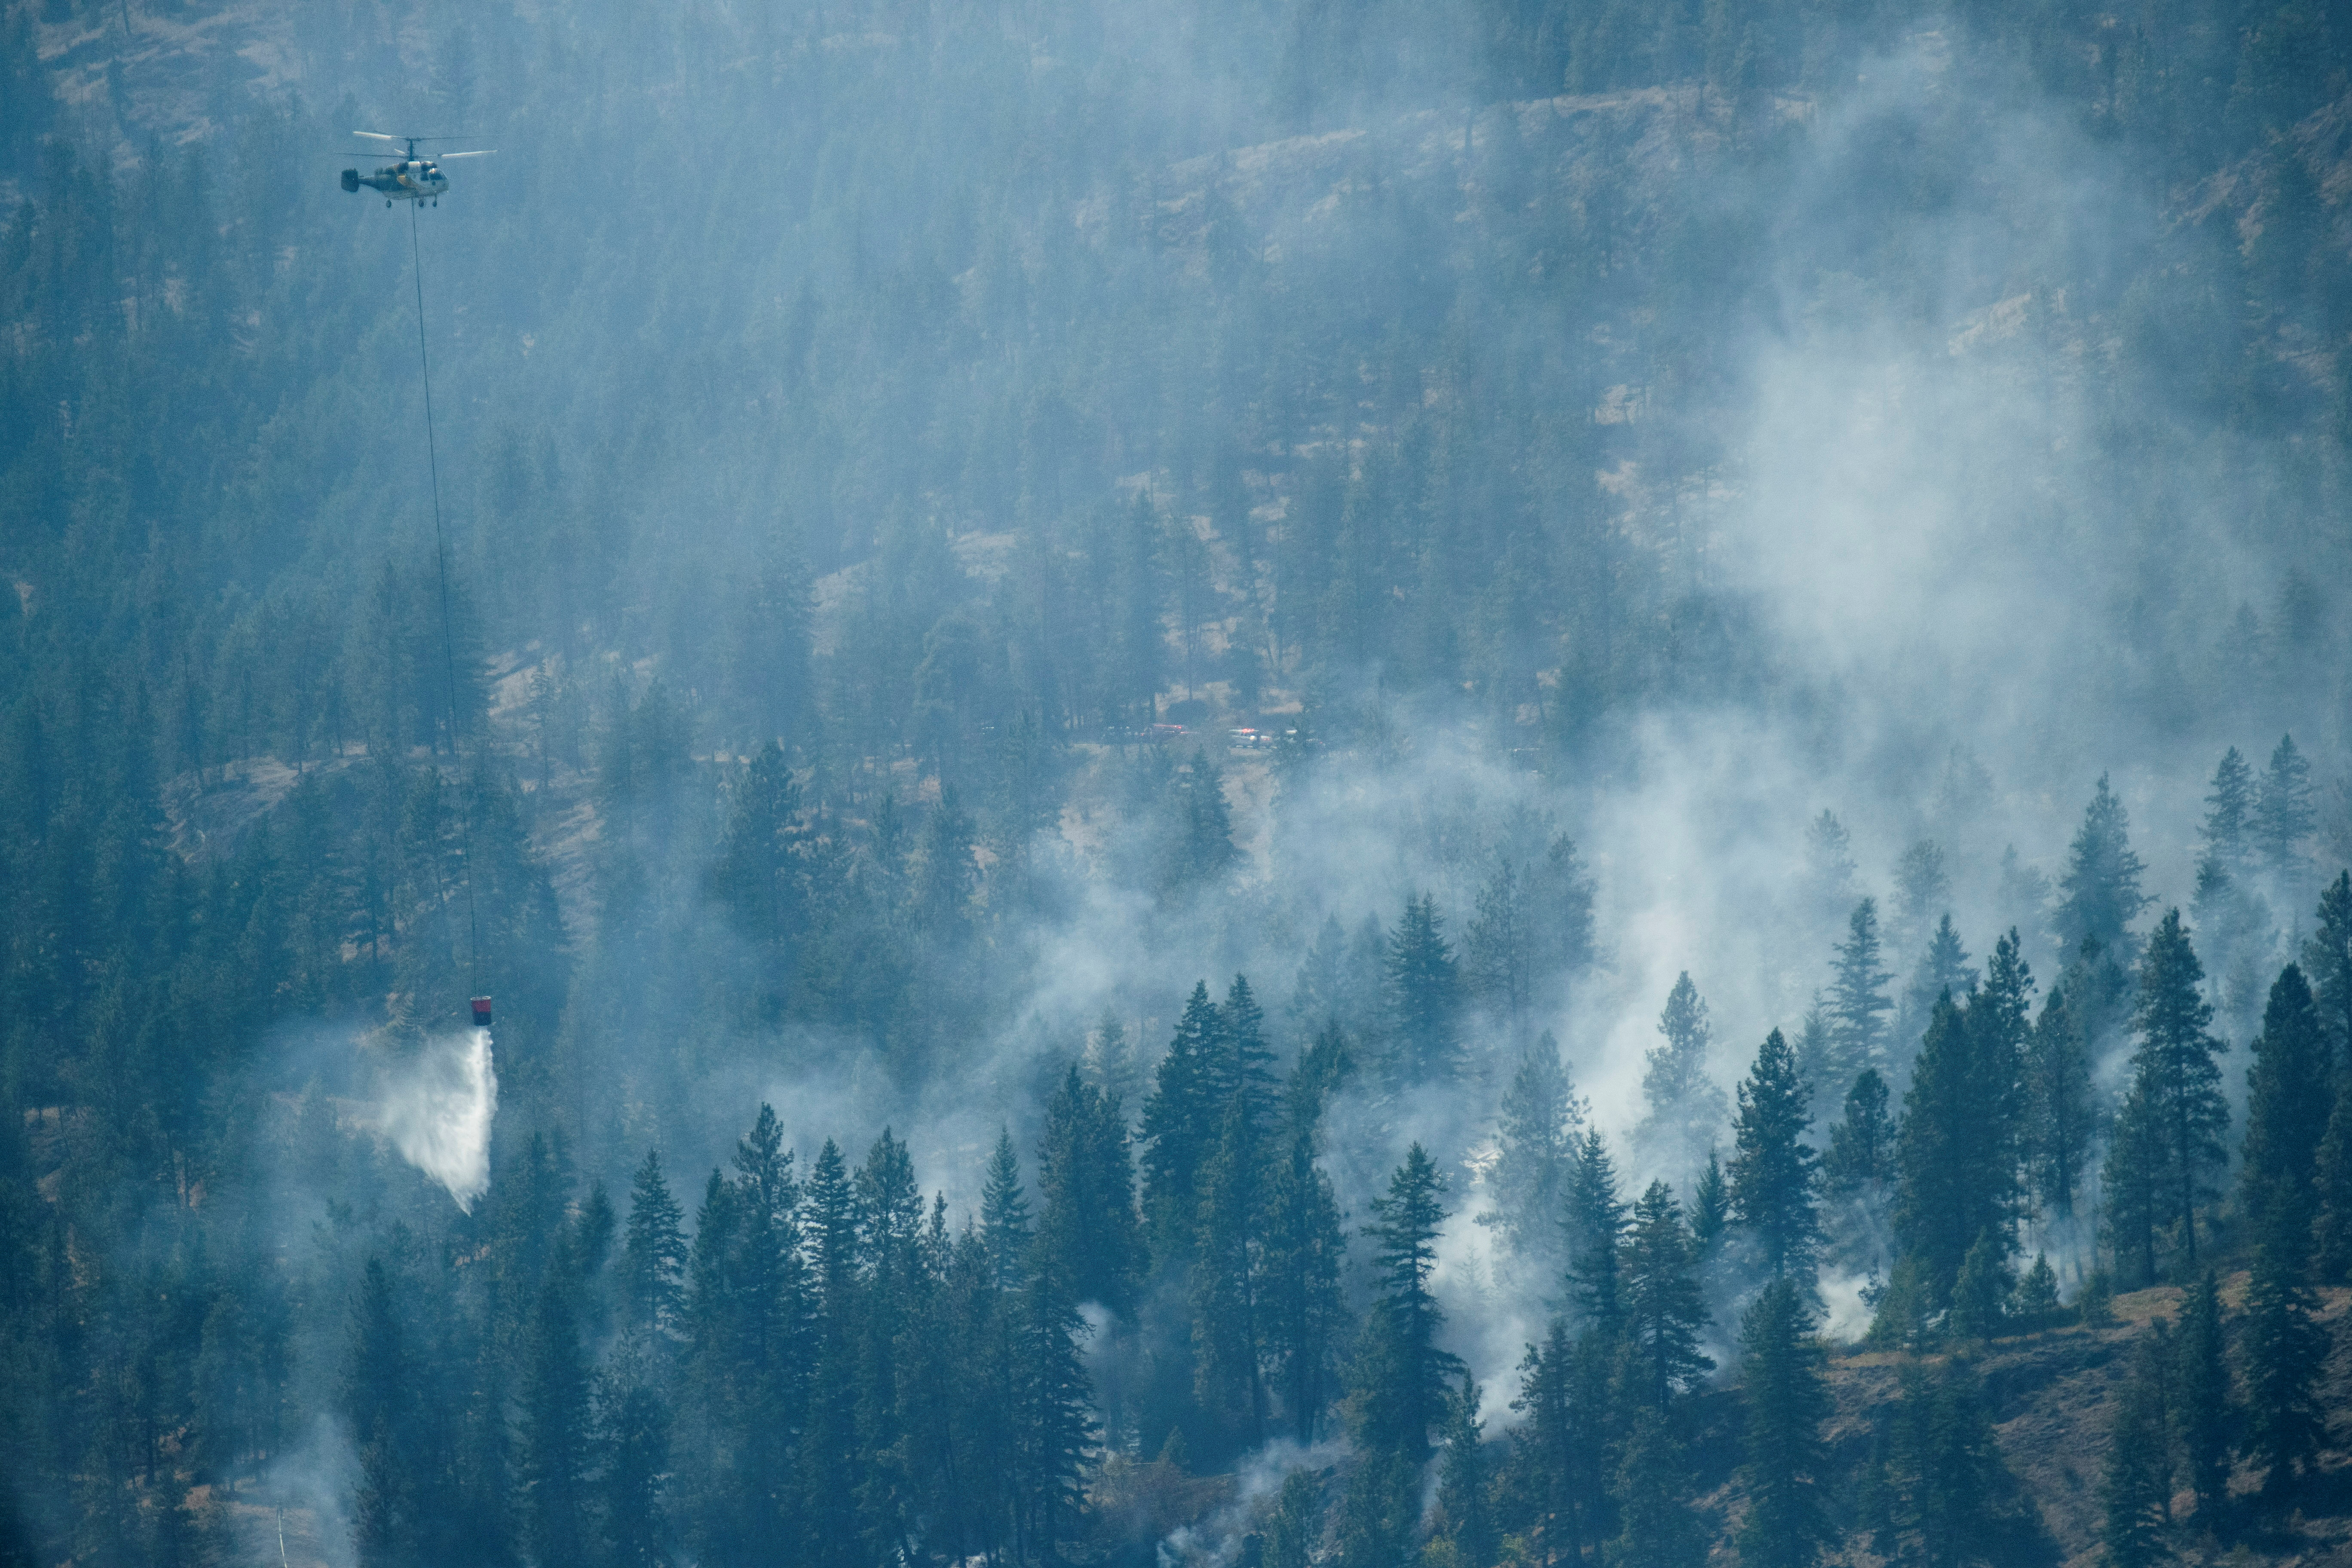 A helicopter battles the Bear Creek fire that sprung up south of the White Rock forest on Westside Rd. near Fintry, Canada, August 24, 2021. REUTERS/Artur Gajda